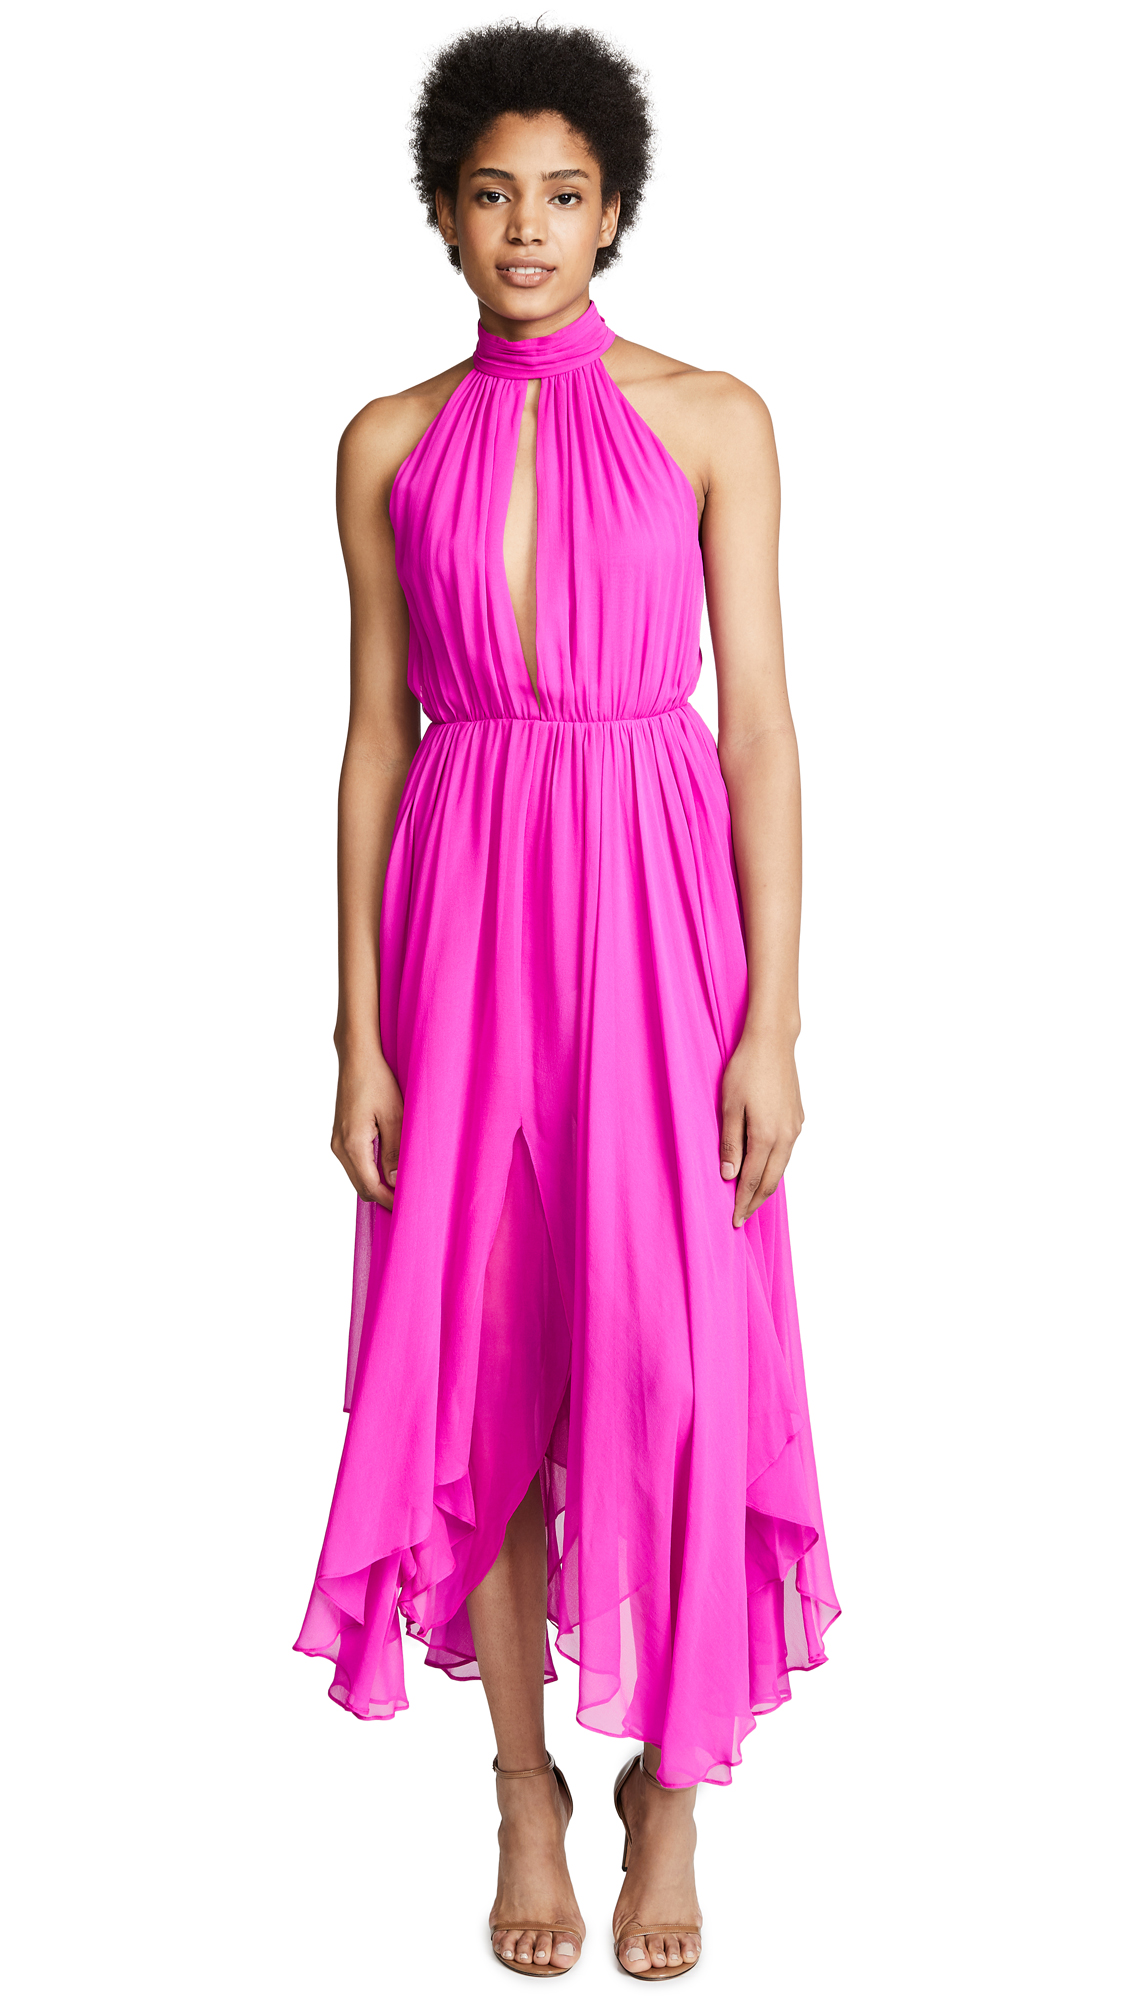 FLEUR DU MAL Keyhole Gathered Dress in Pink